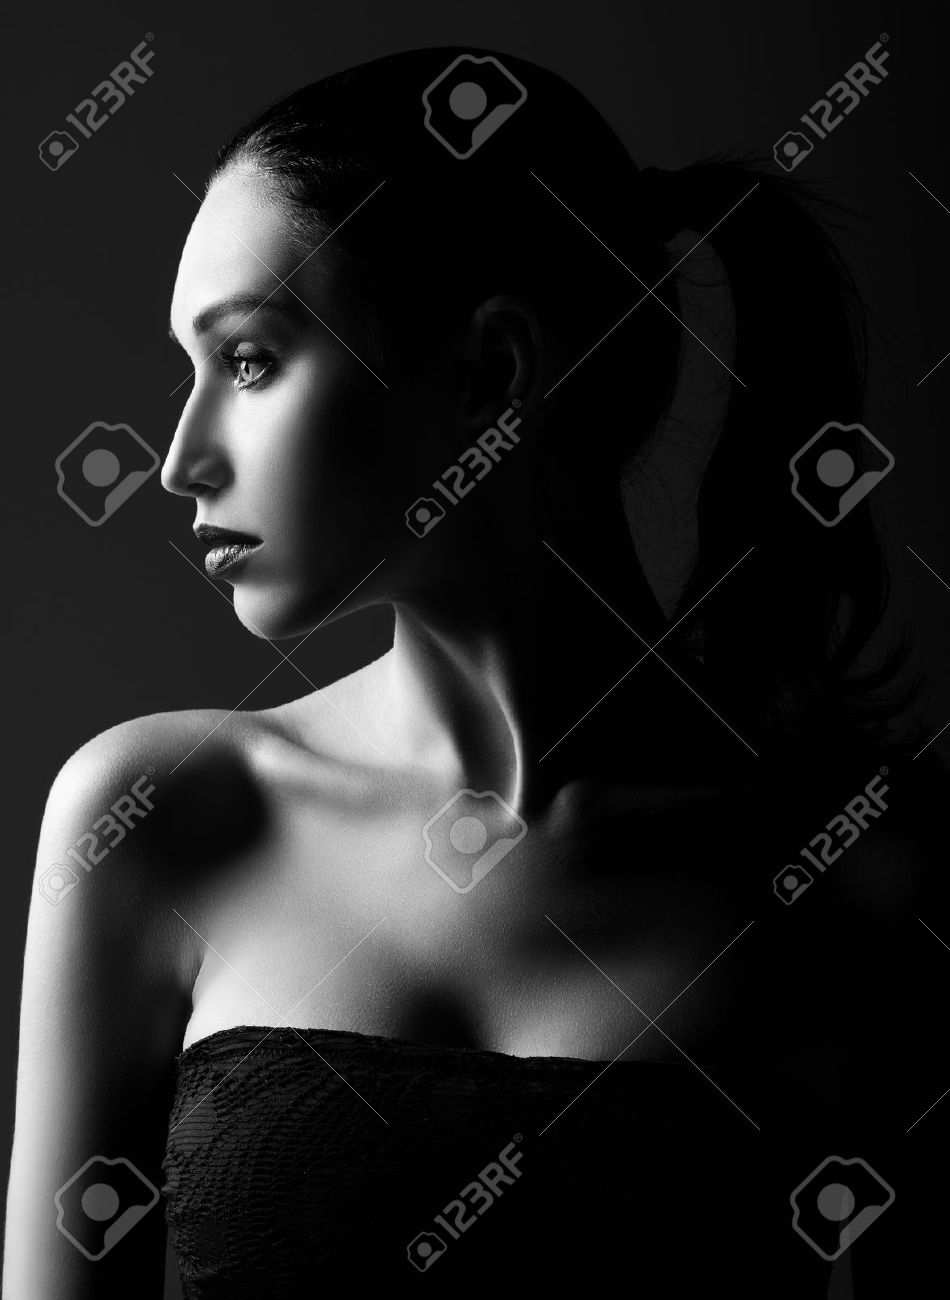 Stock photo studio shot dramatic portrait of a beautiful young woman profile view black and white